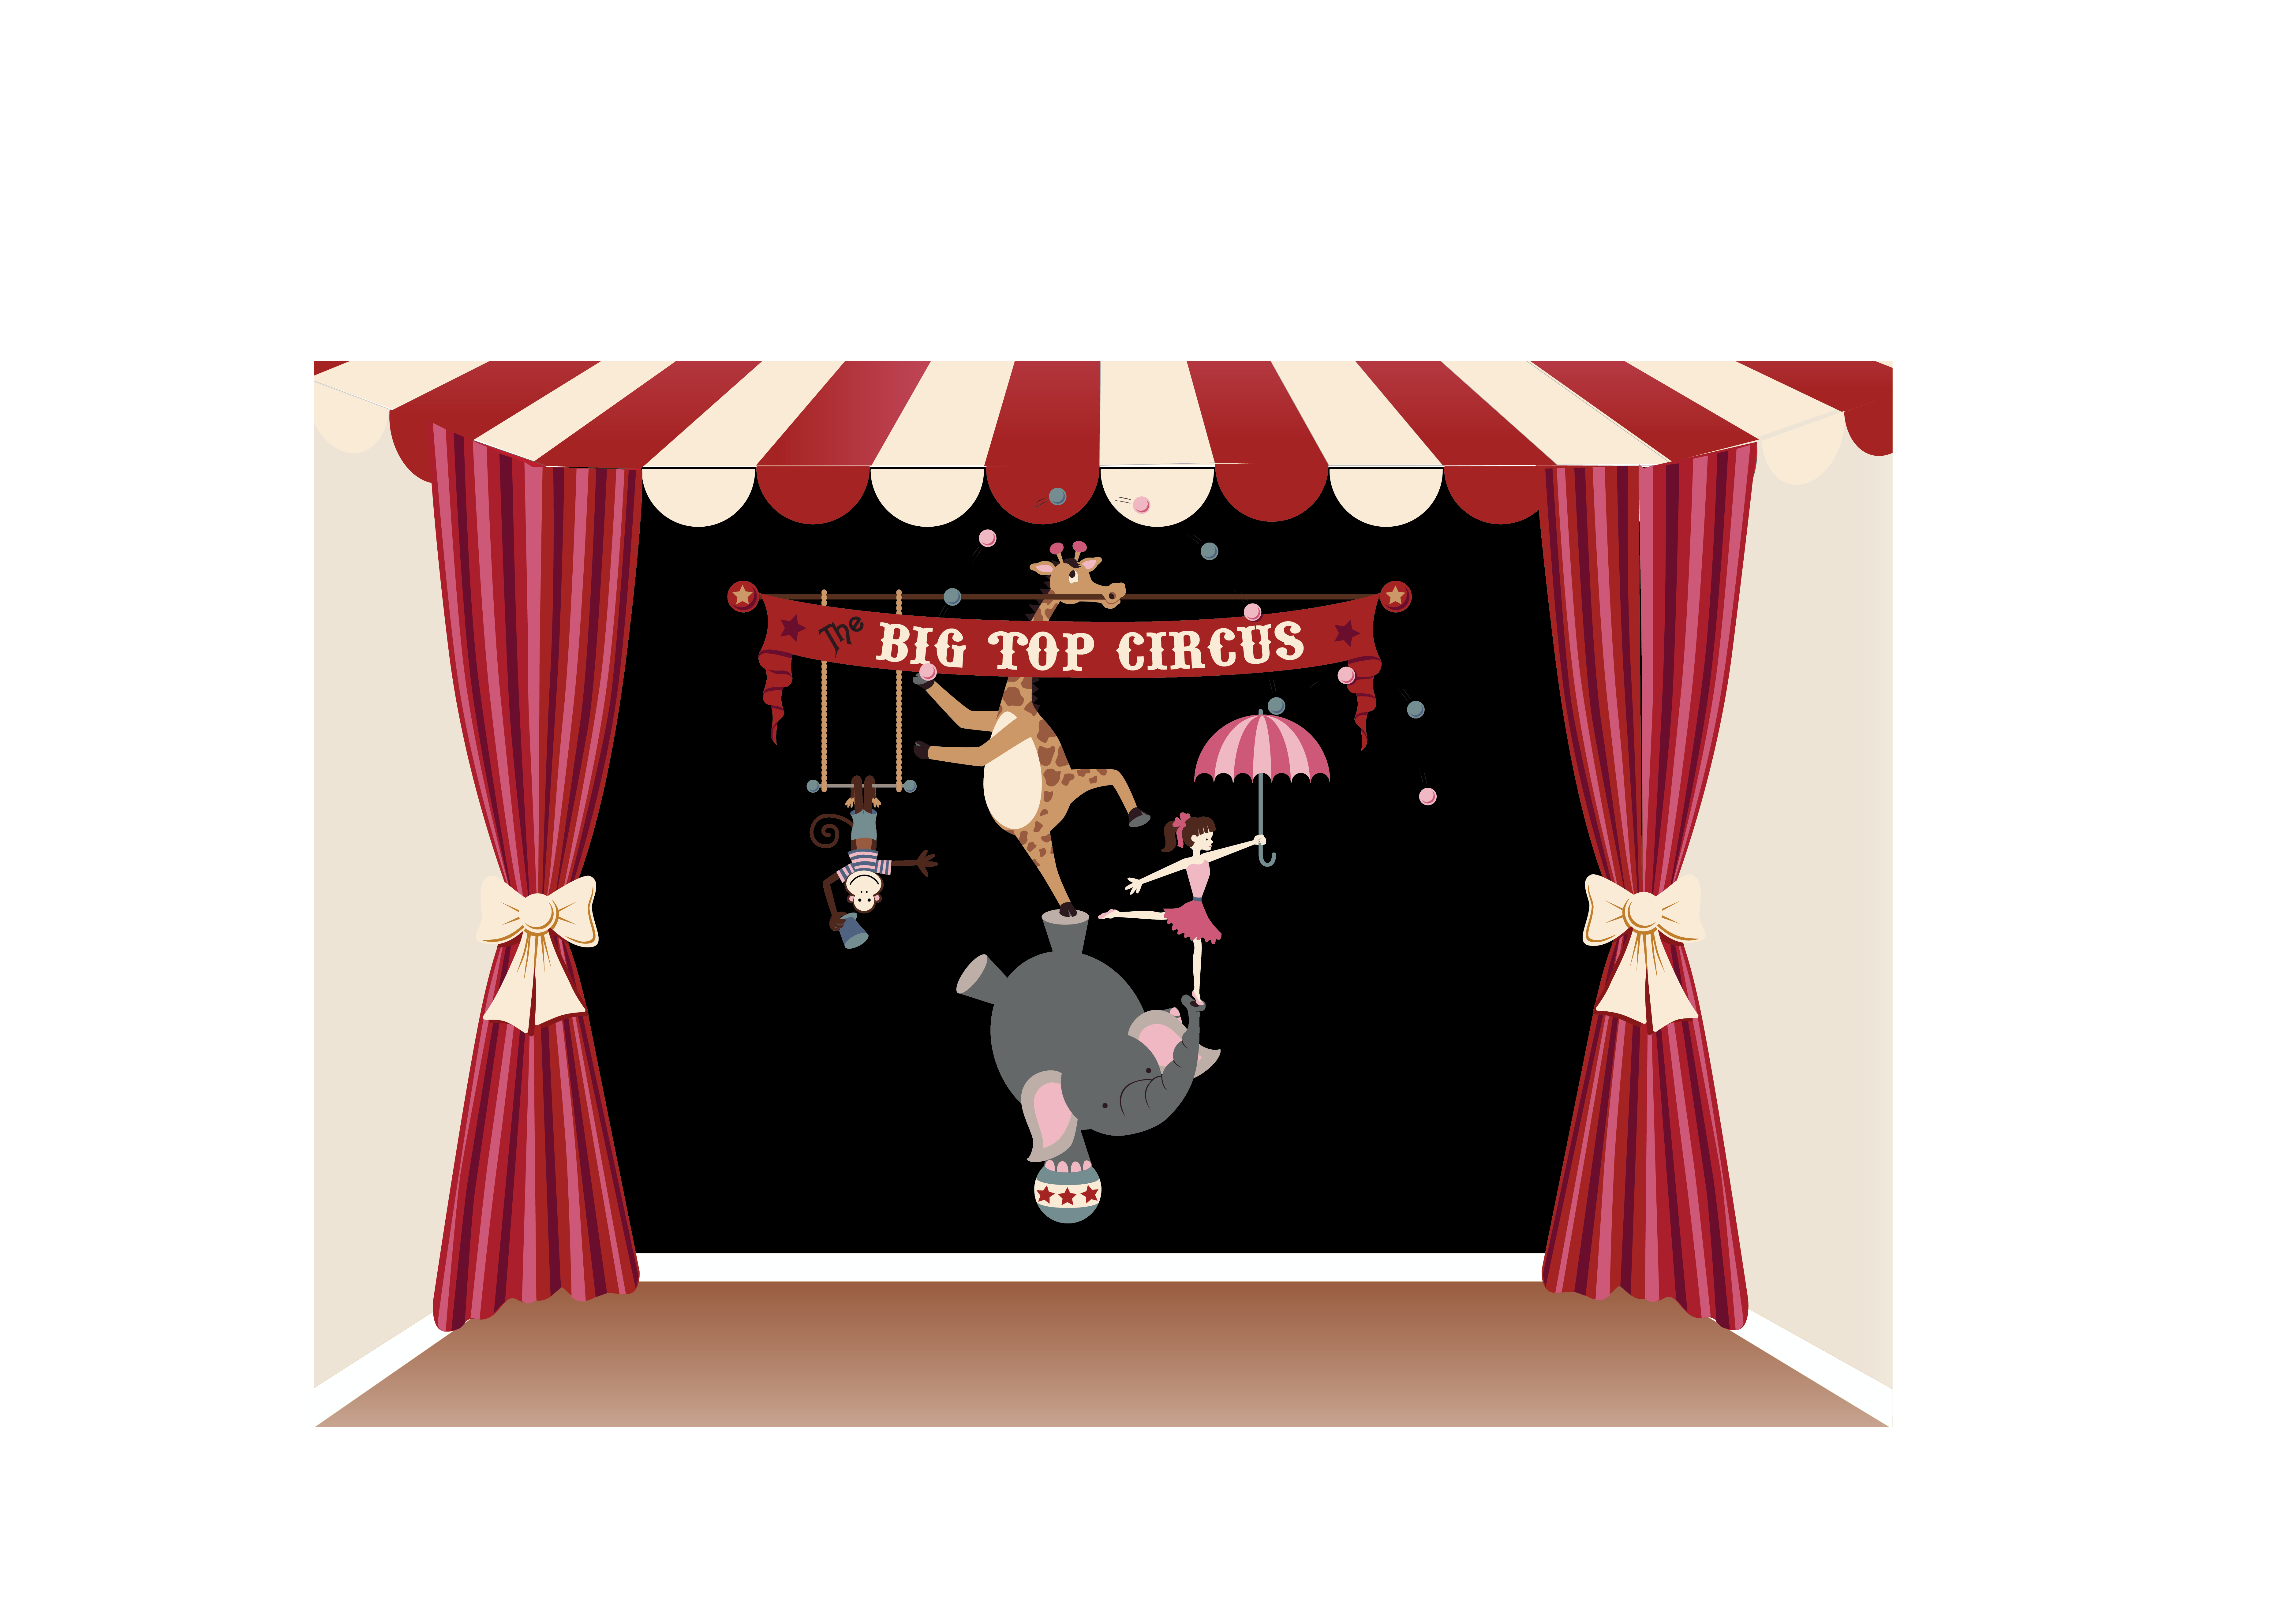 Combine our  Big Top Circus  and our  Just Curtains  murals to create  sc 1 st  Pinterest & The Big Top Circus Paint-by-Number Wall Mural | Big top circus ...